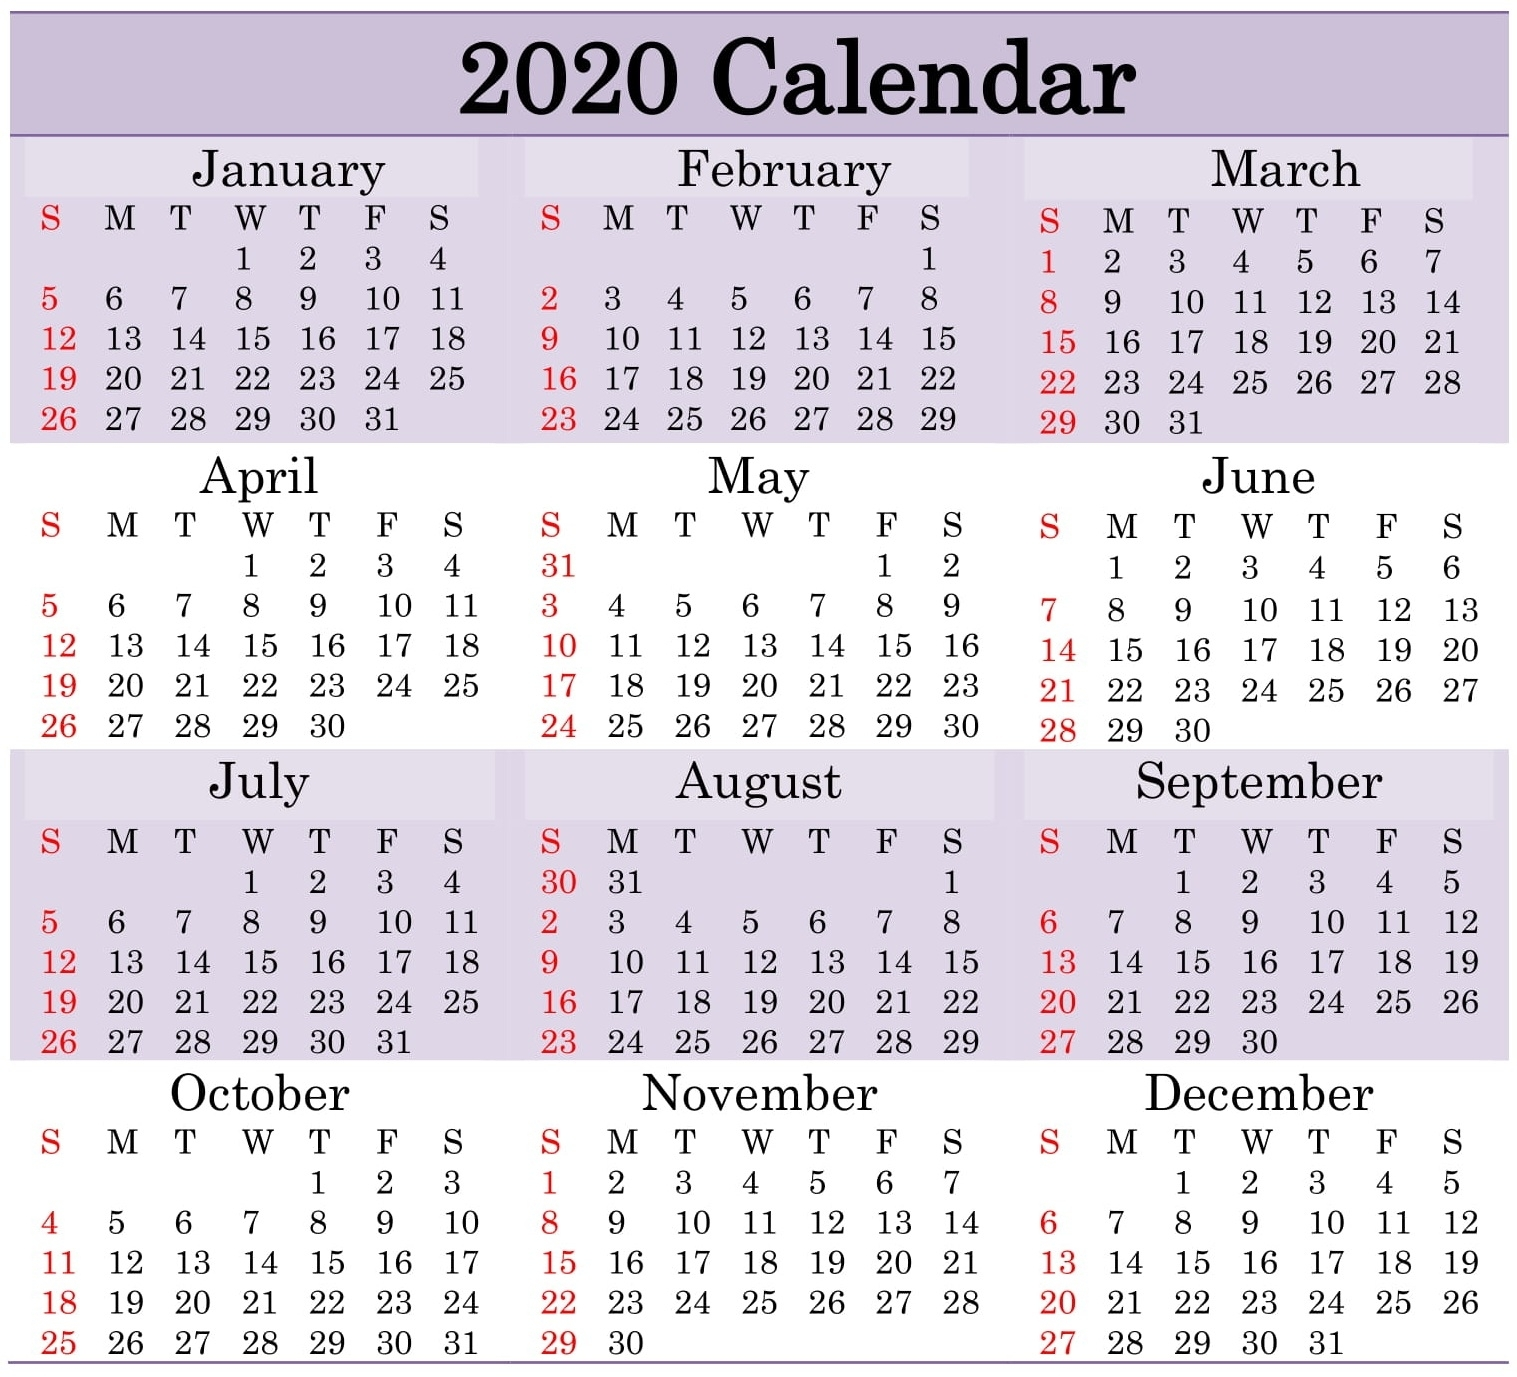 Printable 2020 Calendar Word Document - Latest Printable within 2020 Yearly Calendar With Julian Dates